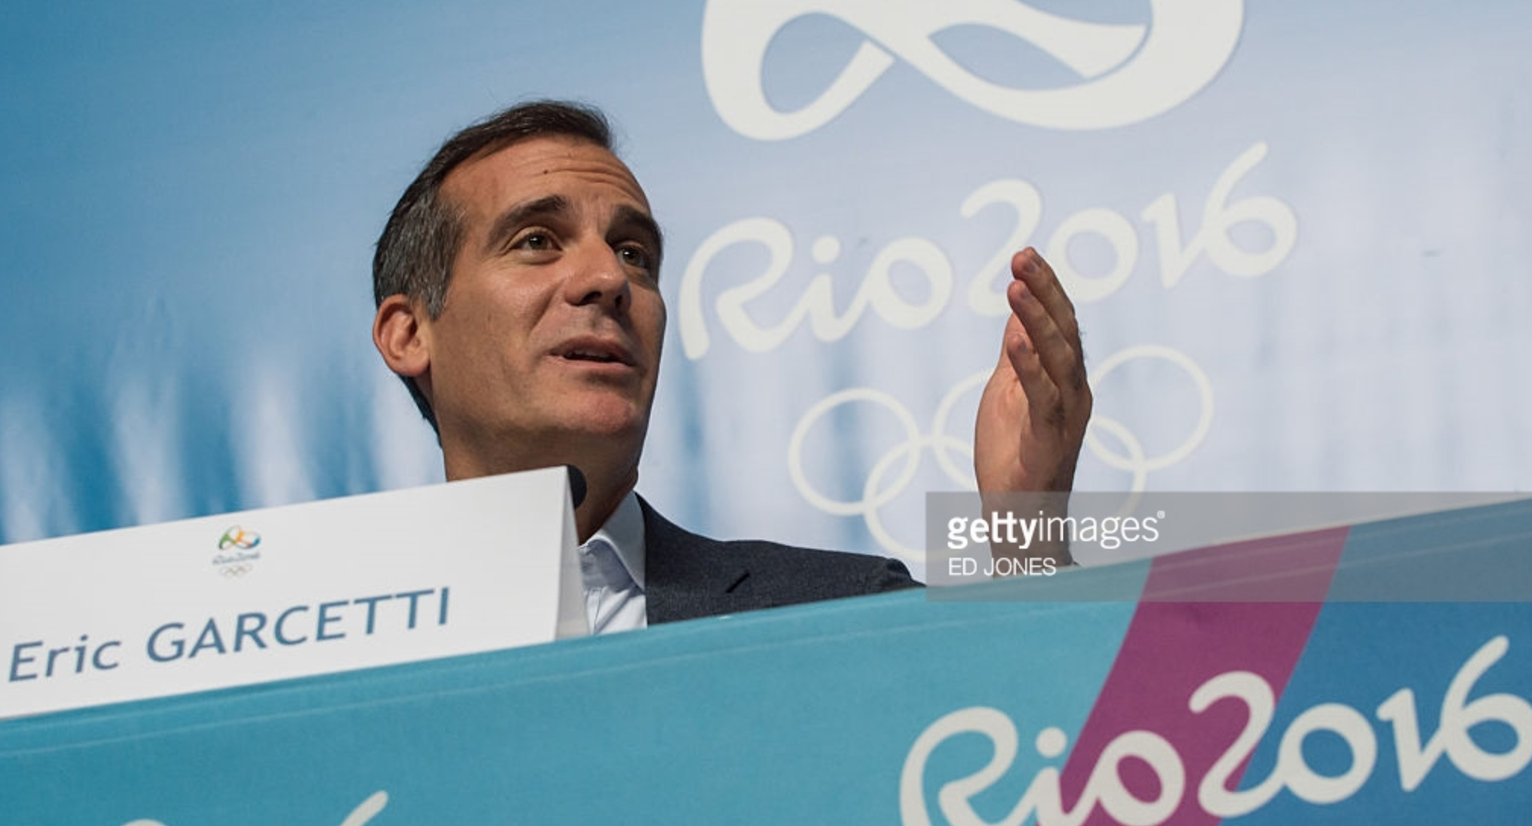 During the Rio Olympics, L.A. Mayor Eric Garcetti wondered how the IOC could support a bid from a country with a president who had said things   during the campaign that offended much of the world.  Trump's rhetoric has grown only more polarizing since his election.